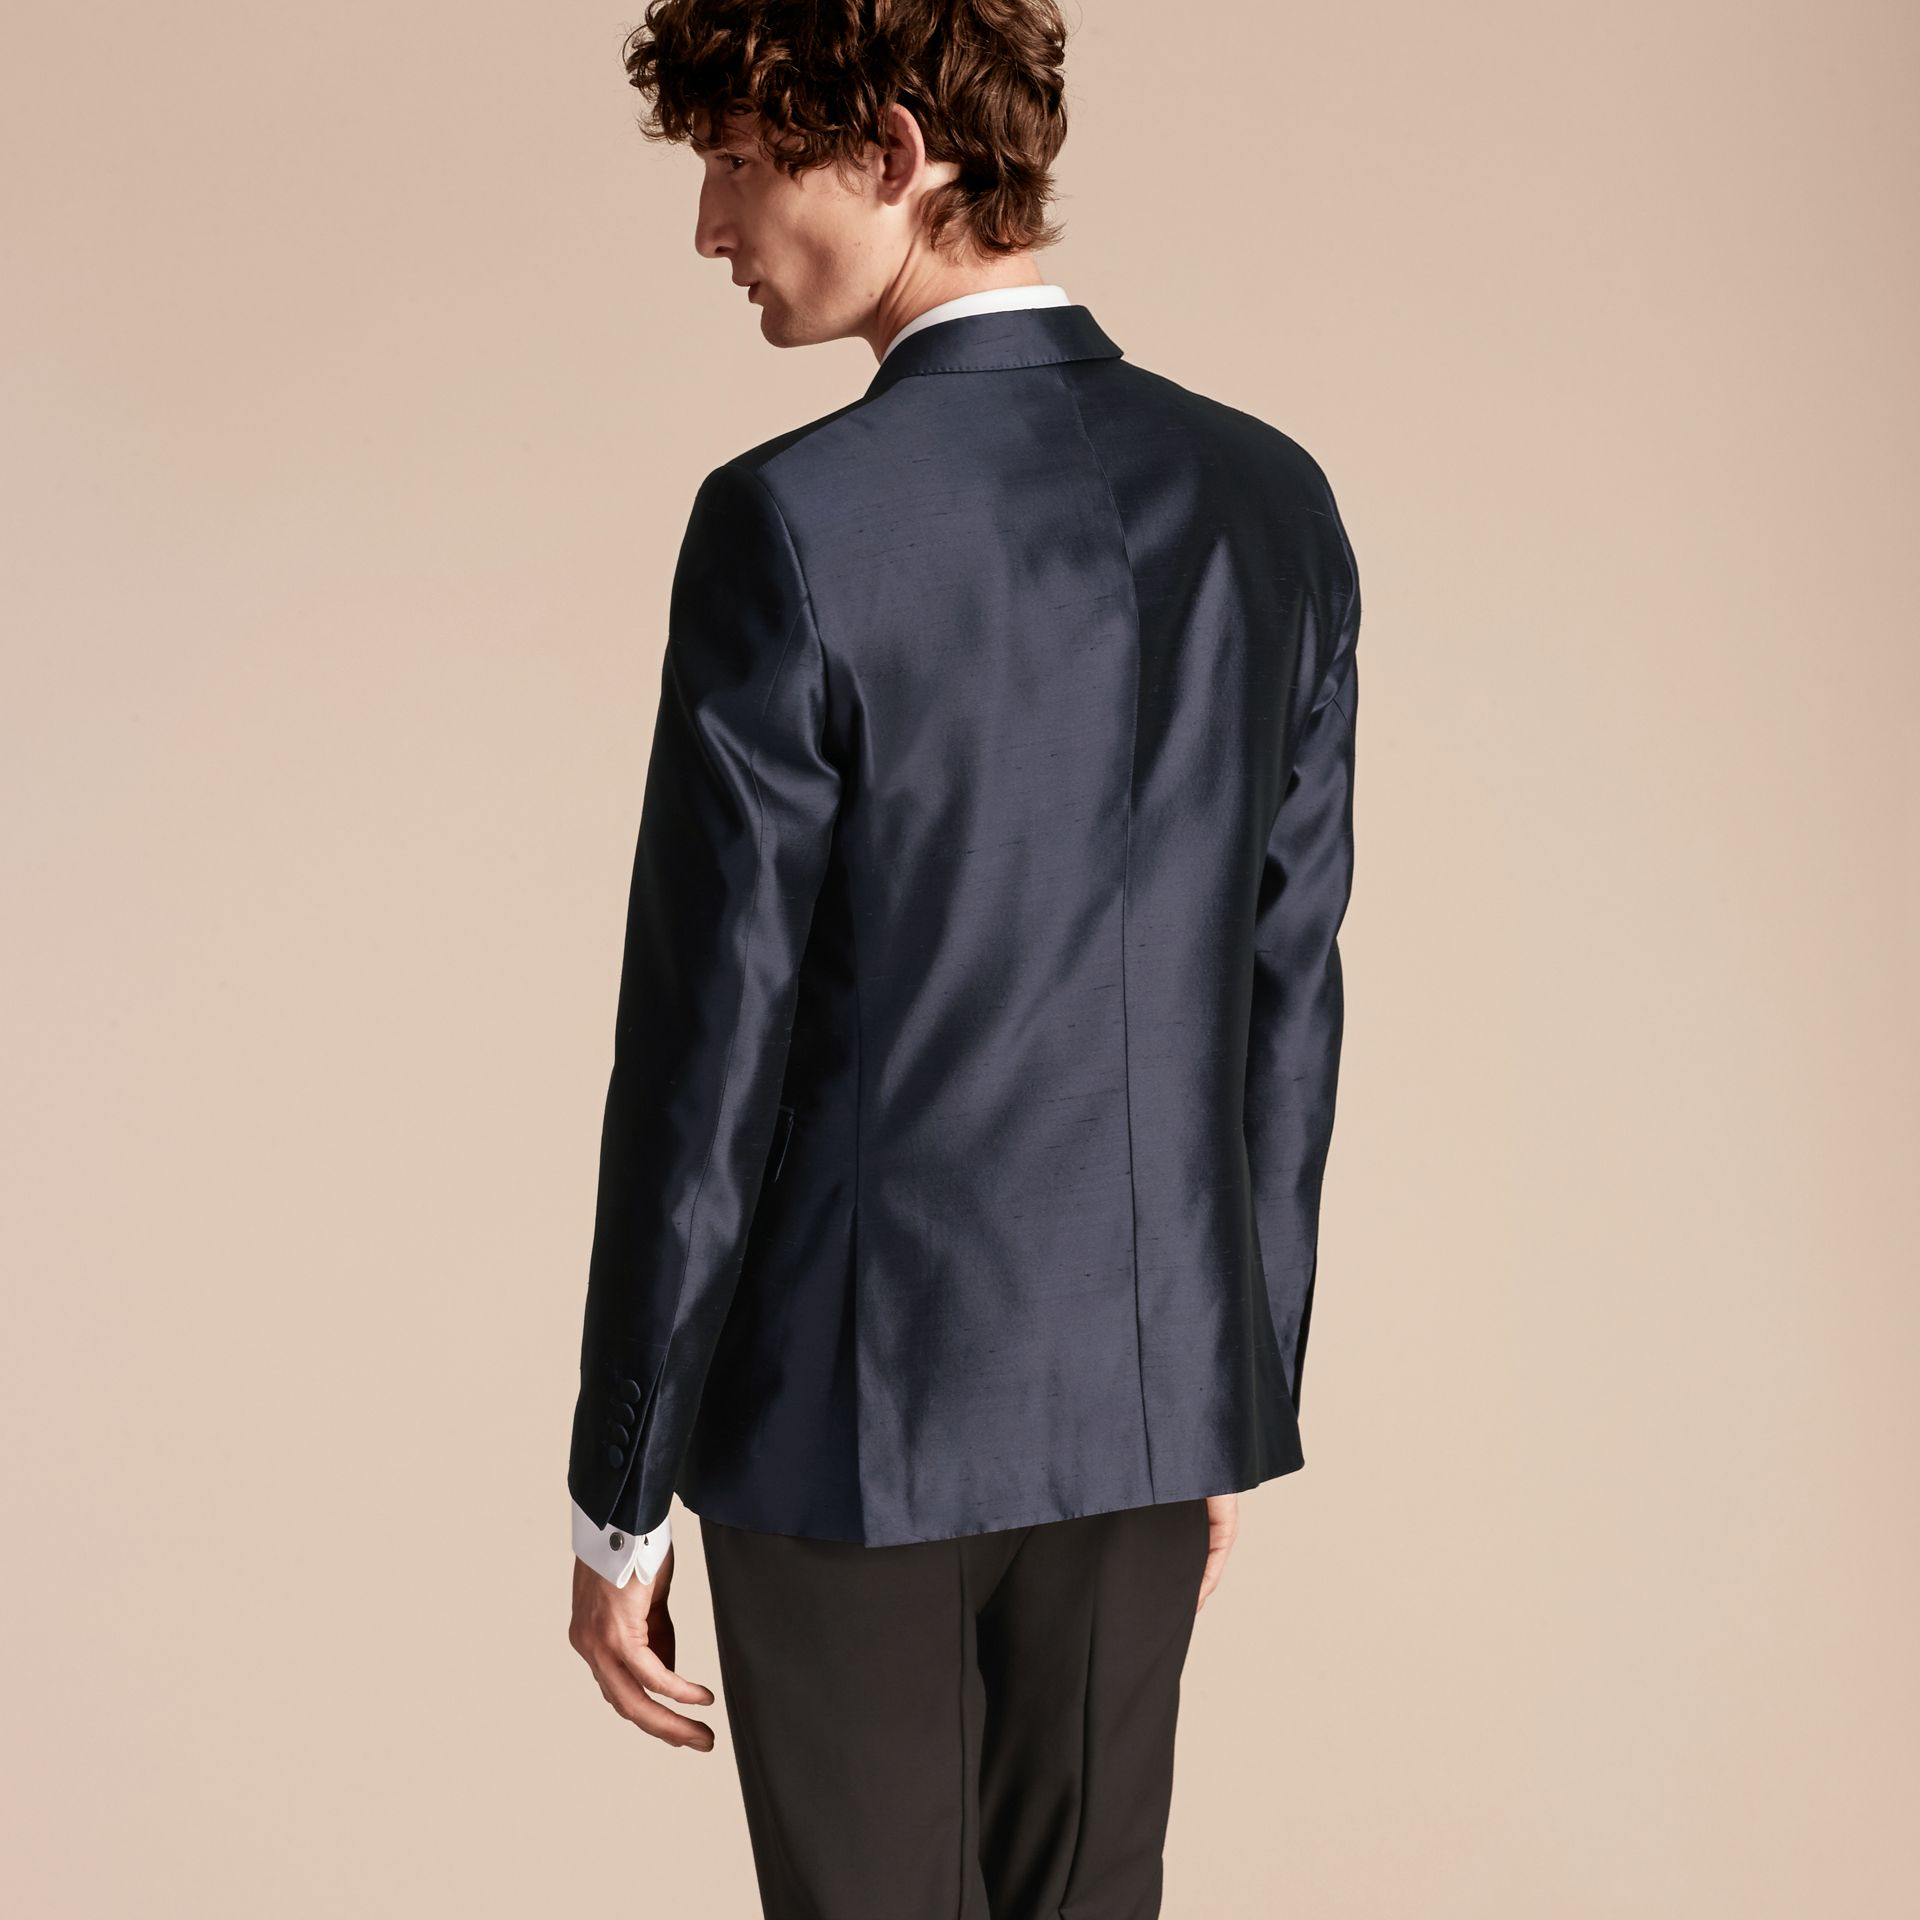 Ink Slim Fit Tailored Silk Jacket - gallery image 3